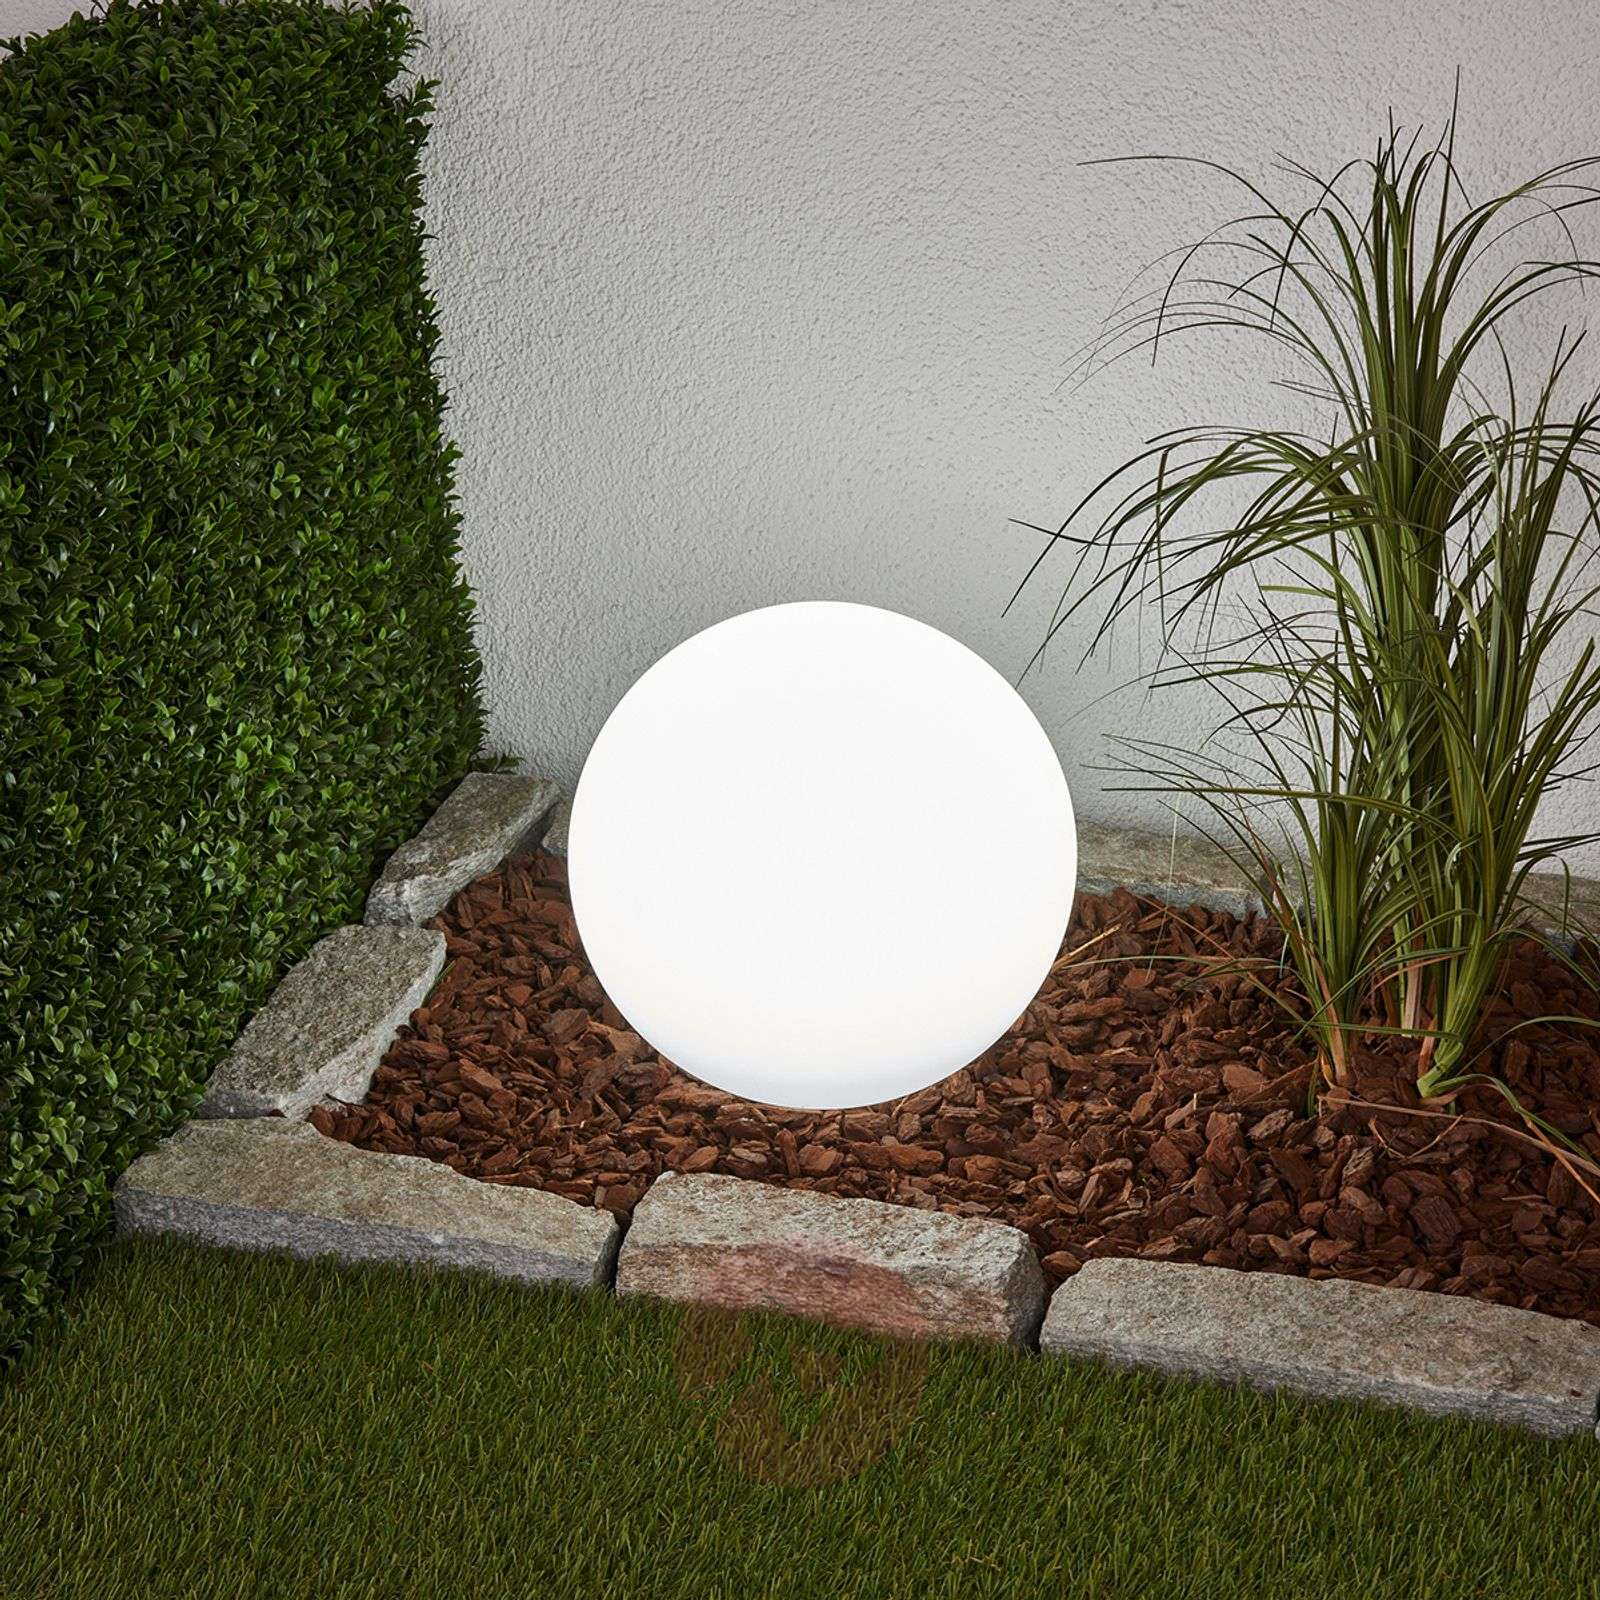 Decorative LED solar lamp Lago, spherical-4018064-02